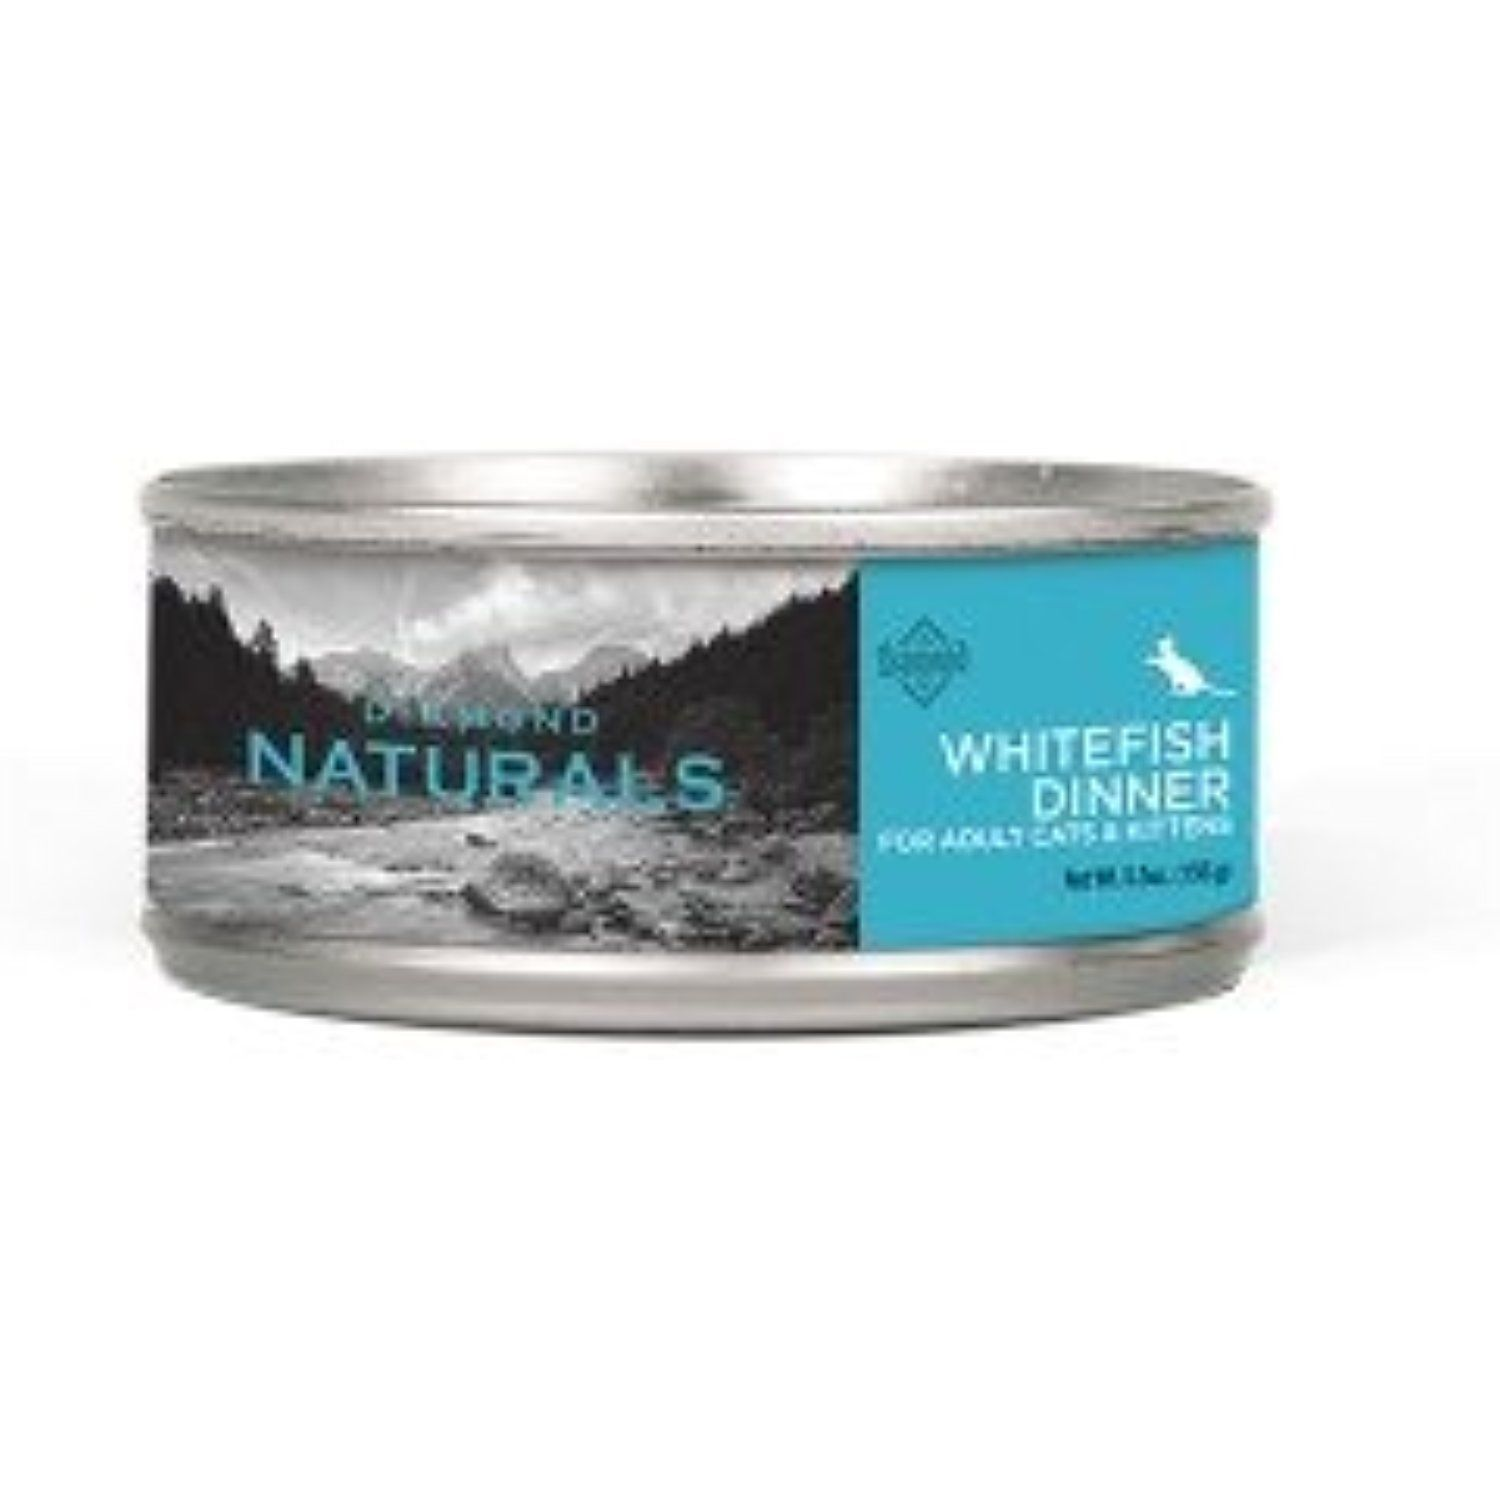 Diamond Naturals Adult Cats And Kittens Canned Food Whitefish Dinner 5 5 Ounce Cans 24 Pack You Could Get Additional Canned Food Dry Dog Food Canned